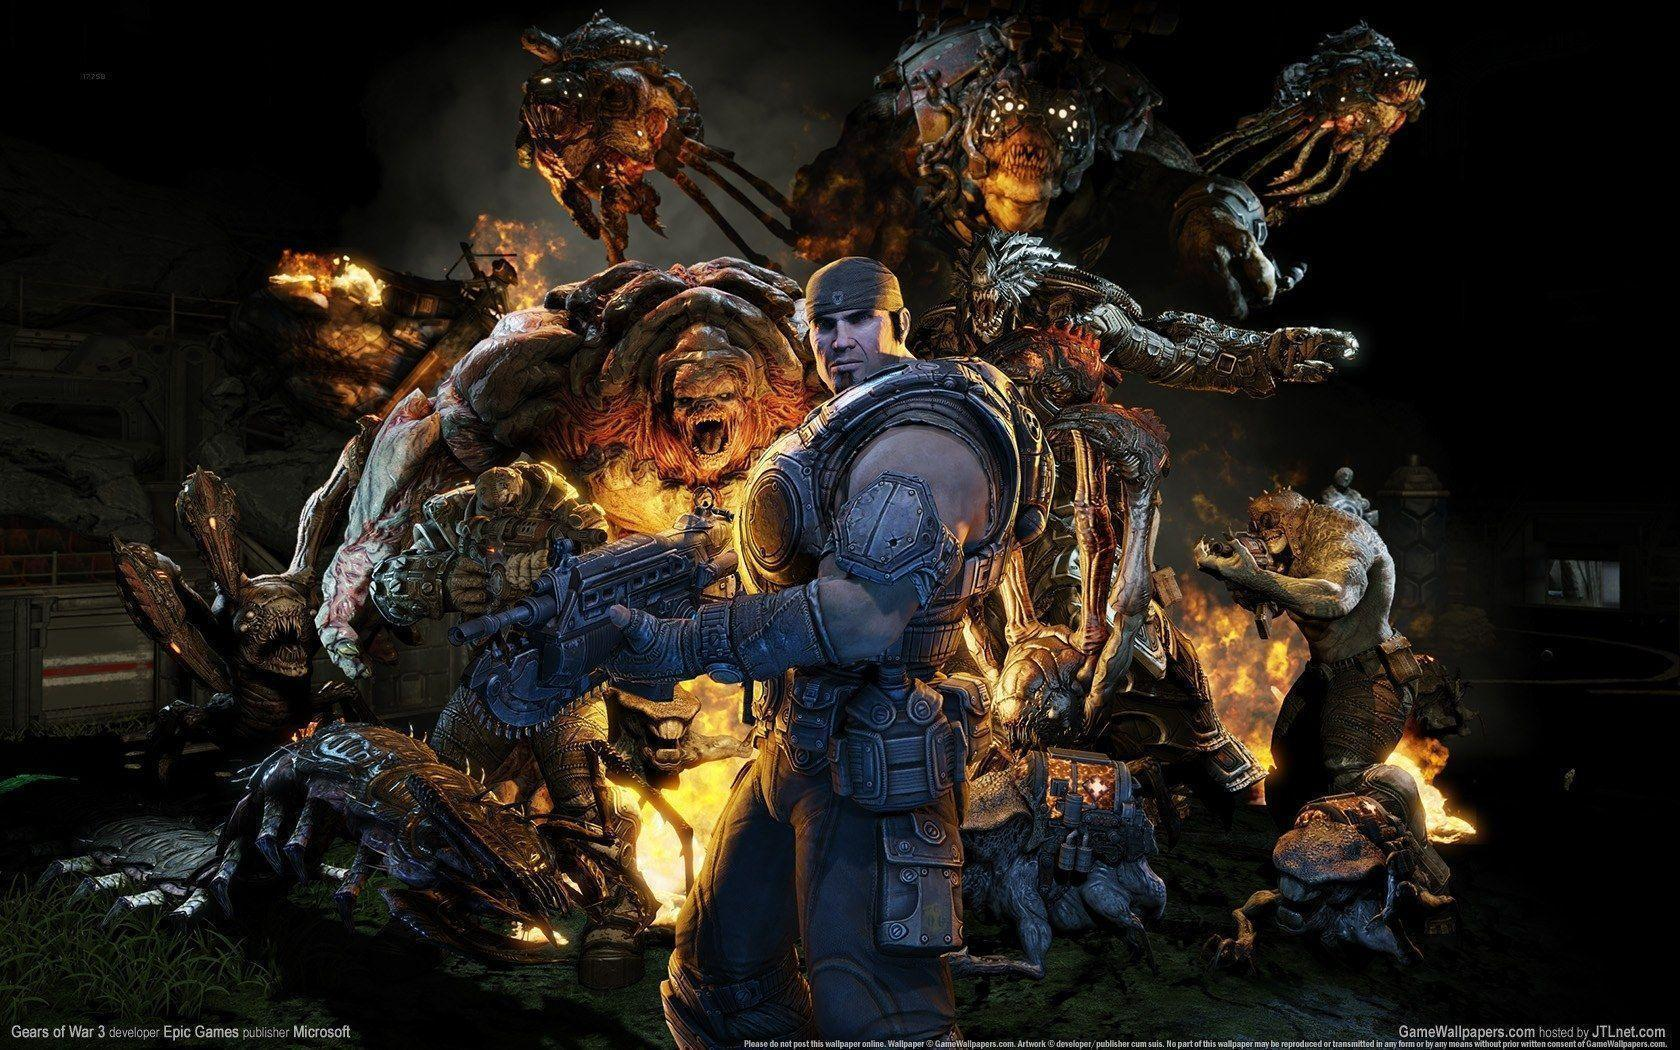 Gears Of War 3 Wallpapers: Gears Of War 3 Wallpapers